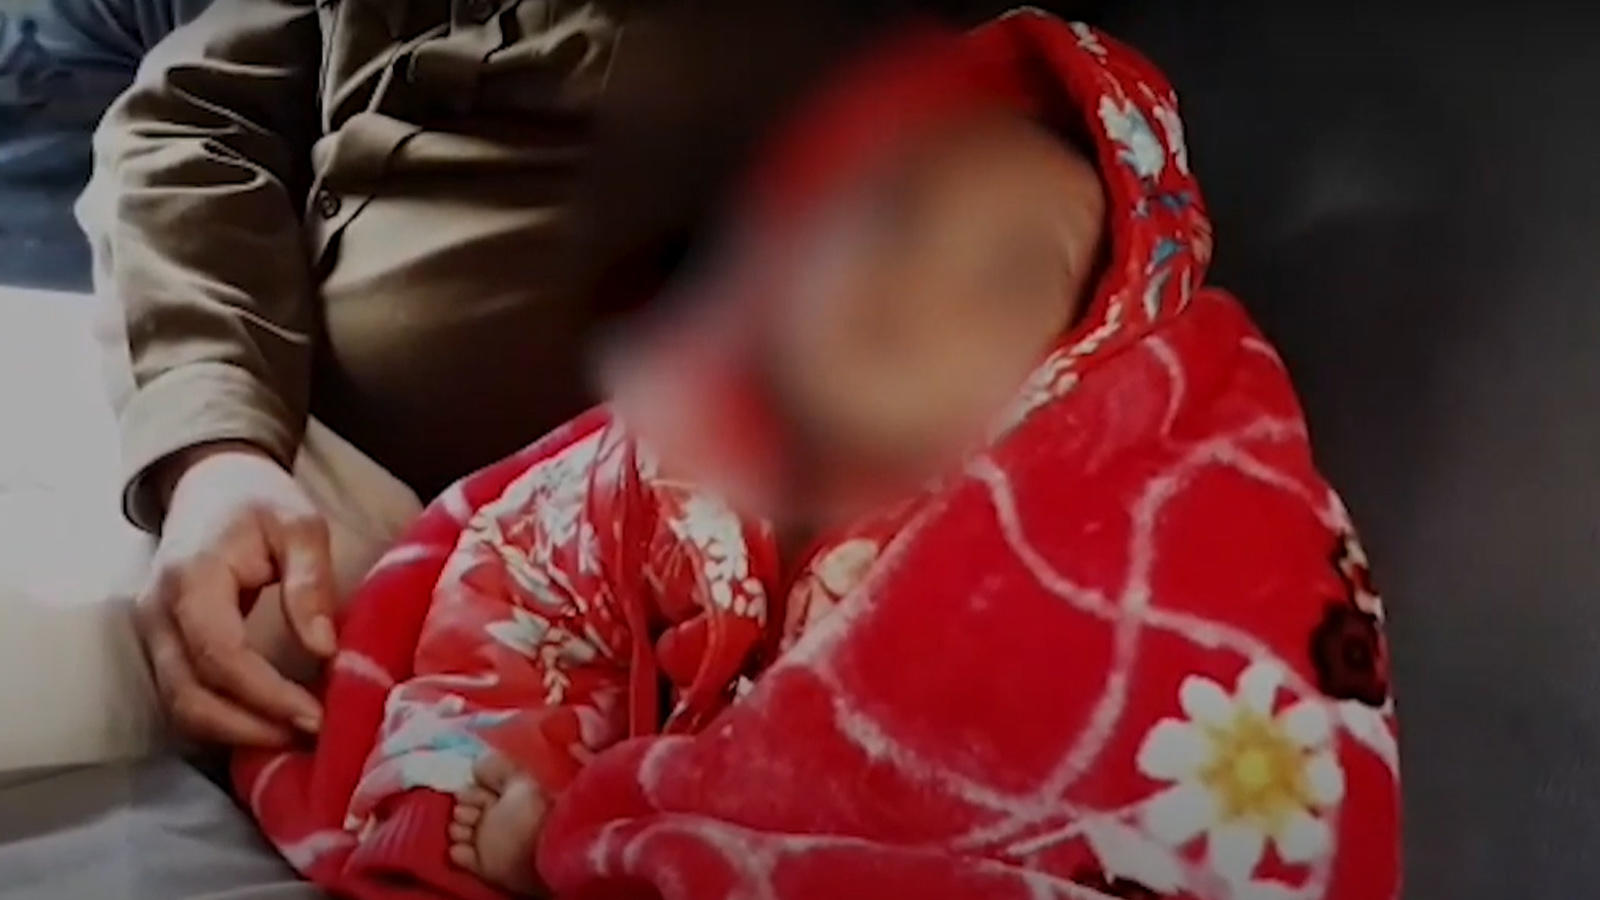 jabalpur-2-year-old-abandoned-baby-girl-mauled-by-the-dogs-cops-launch-search-for-parents